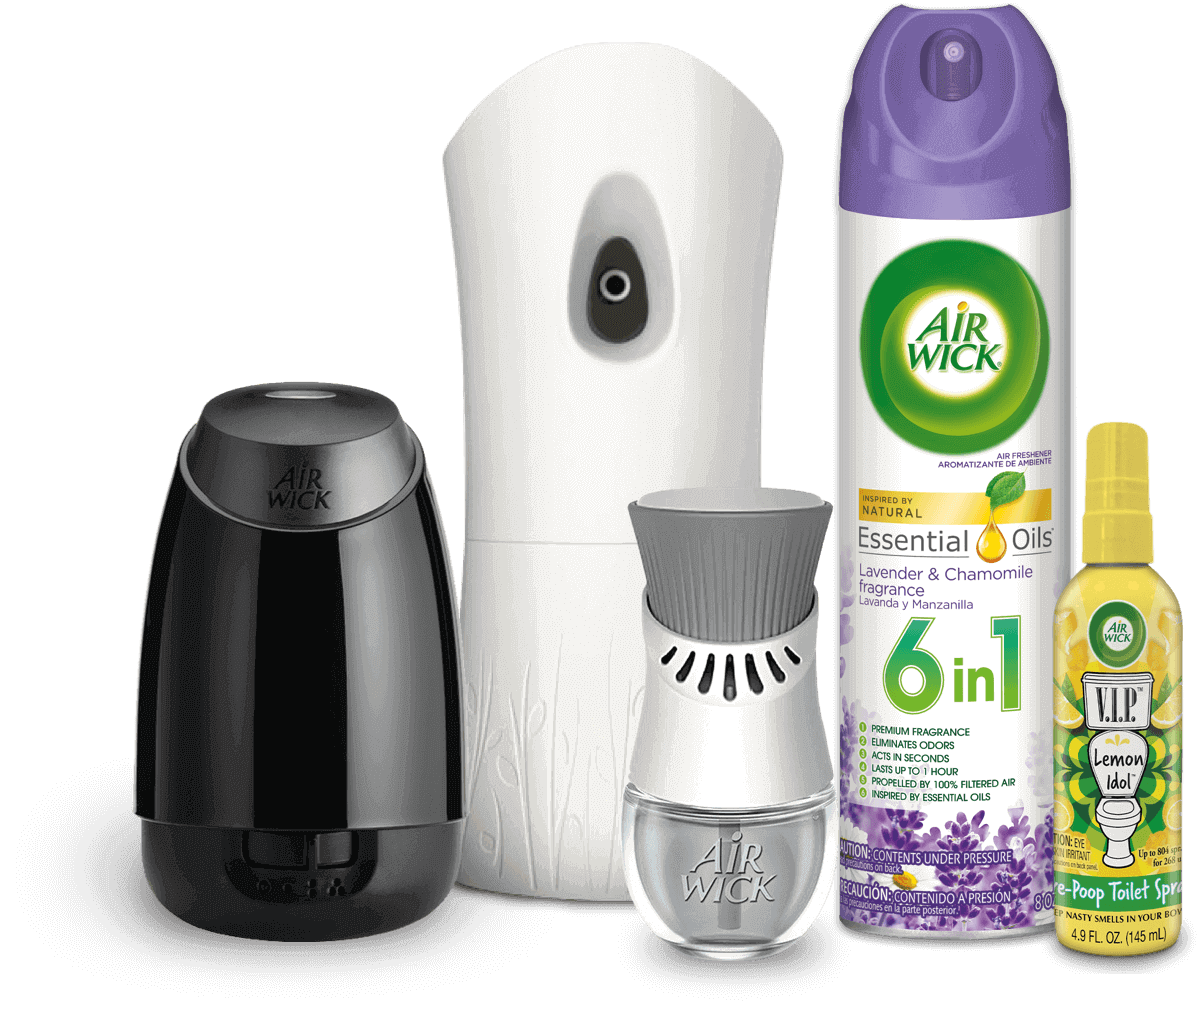 Coupons And Offers Sign Up Save Air Wick Us